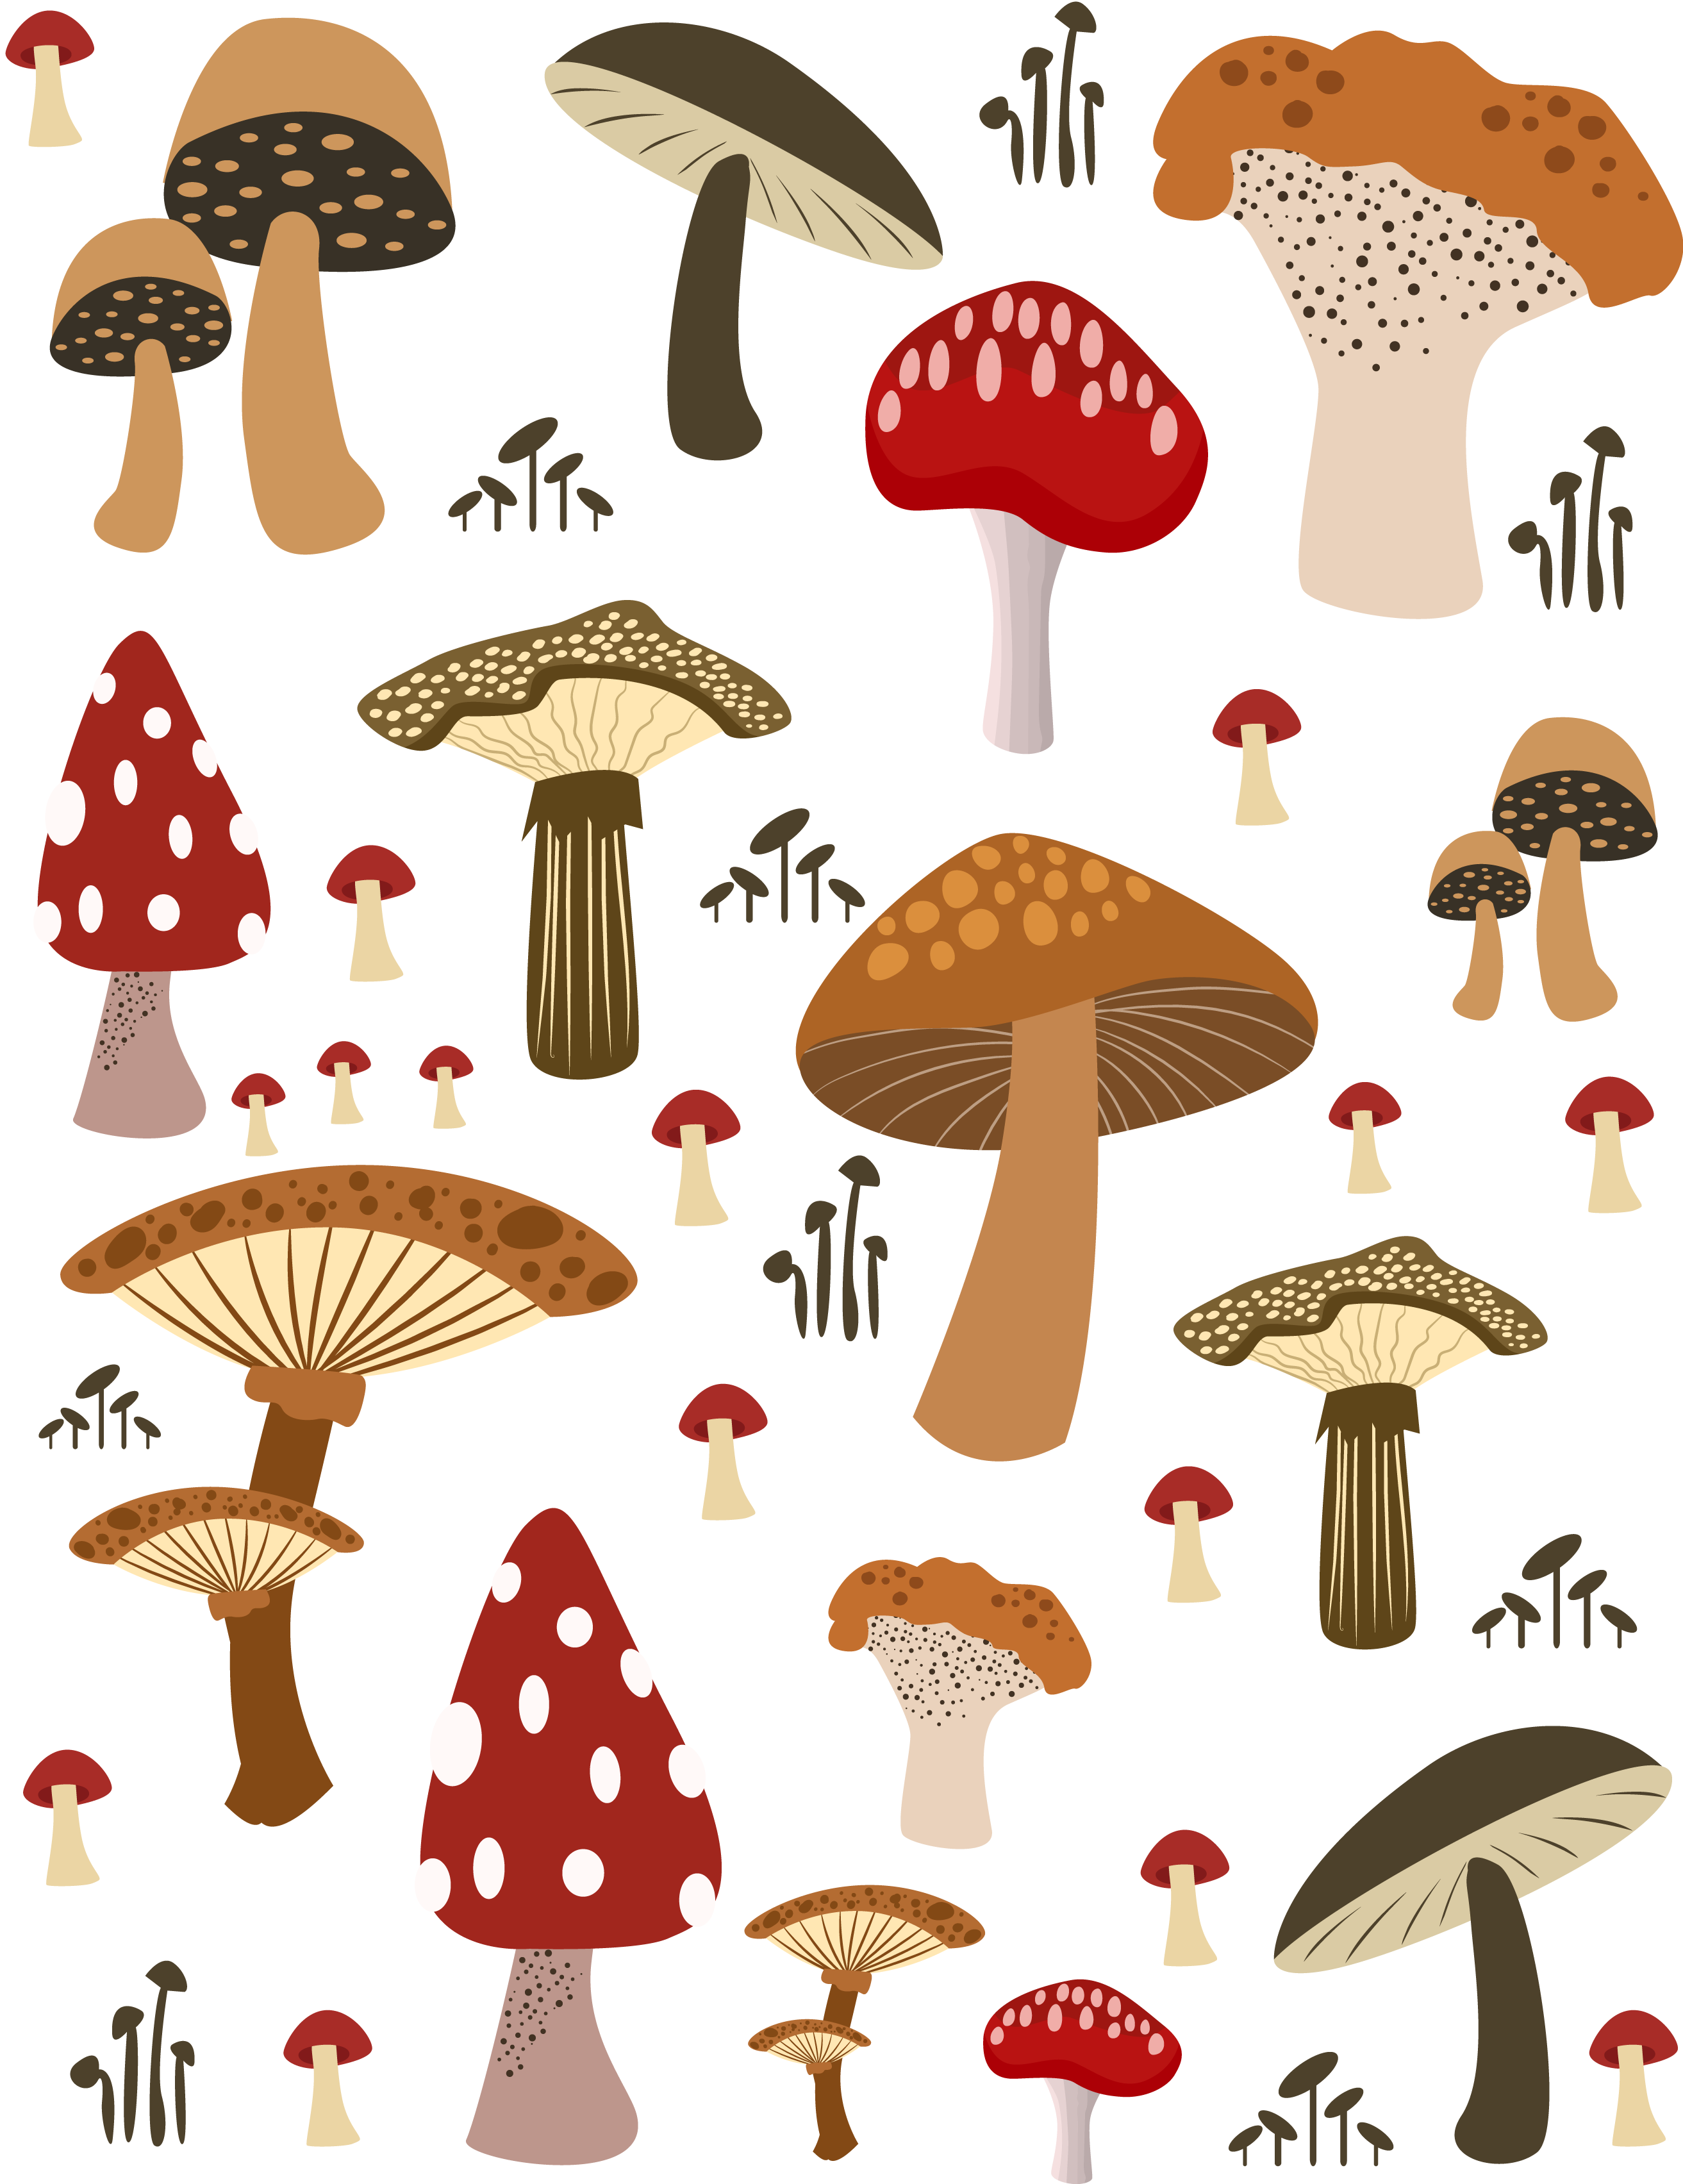 Vector mushroom character. Computer icons illustration featured